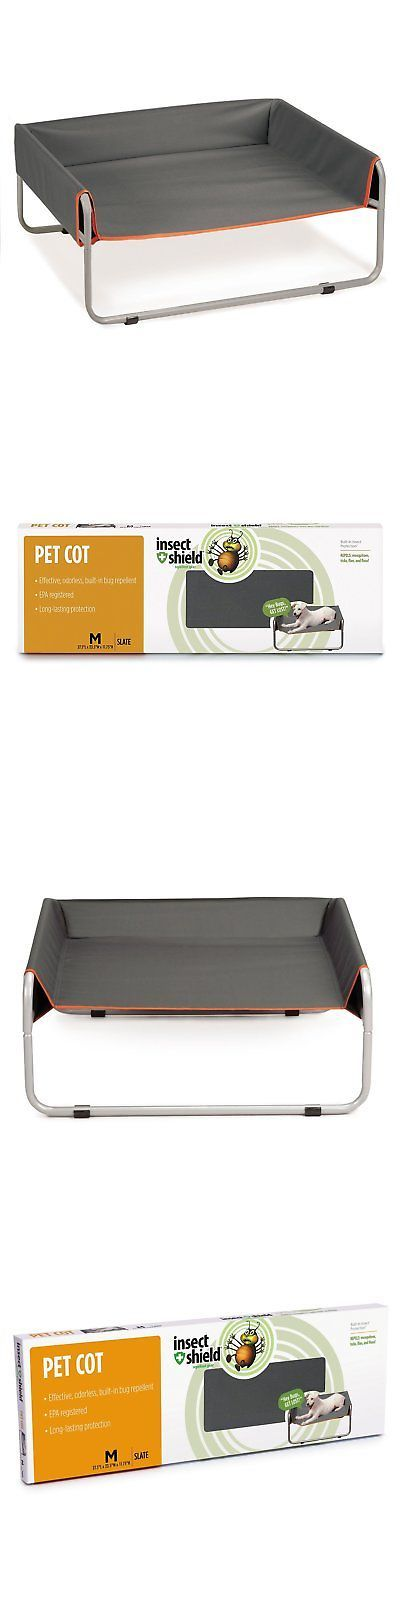 Insect Nets and Repellents 65965: Insect Shield Insect Repellant Dog Cot For Protecting Dogs From Fleas, Ticks, And -> BUY IT NOW ONLY: $63.54 on eBay!